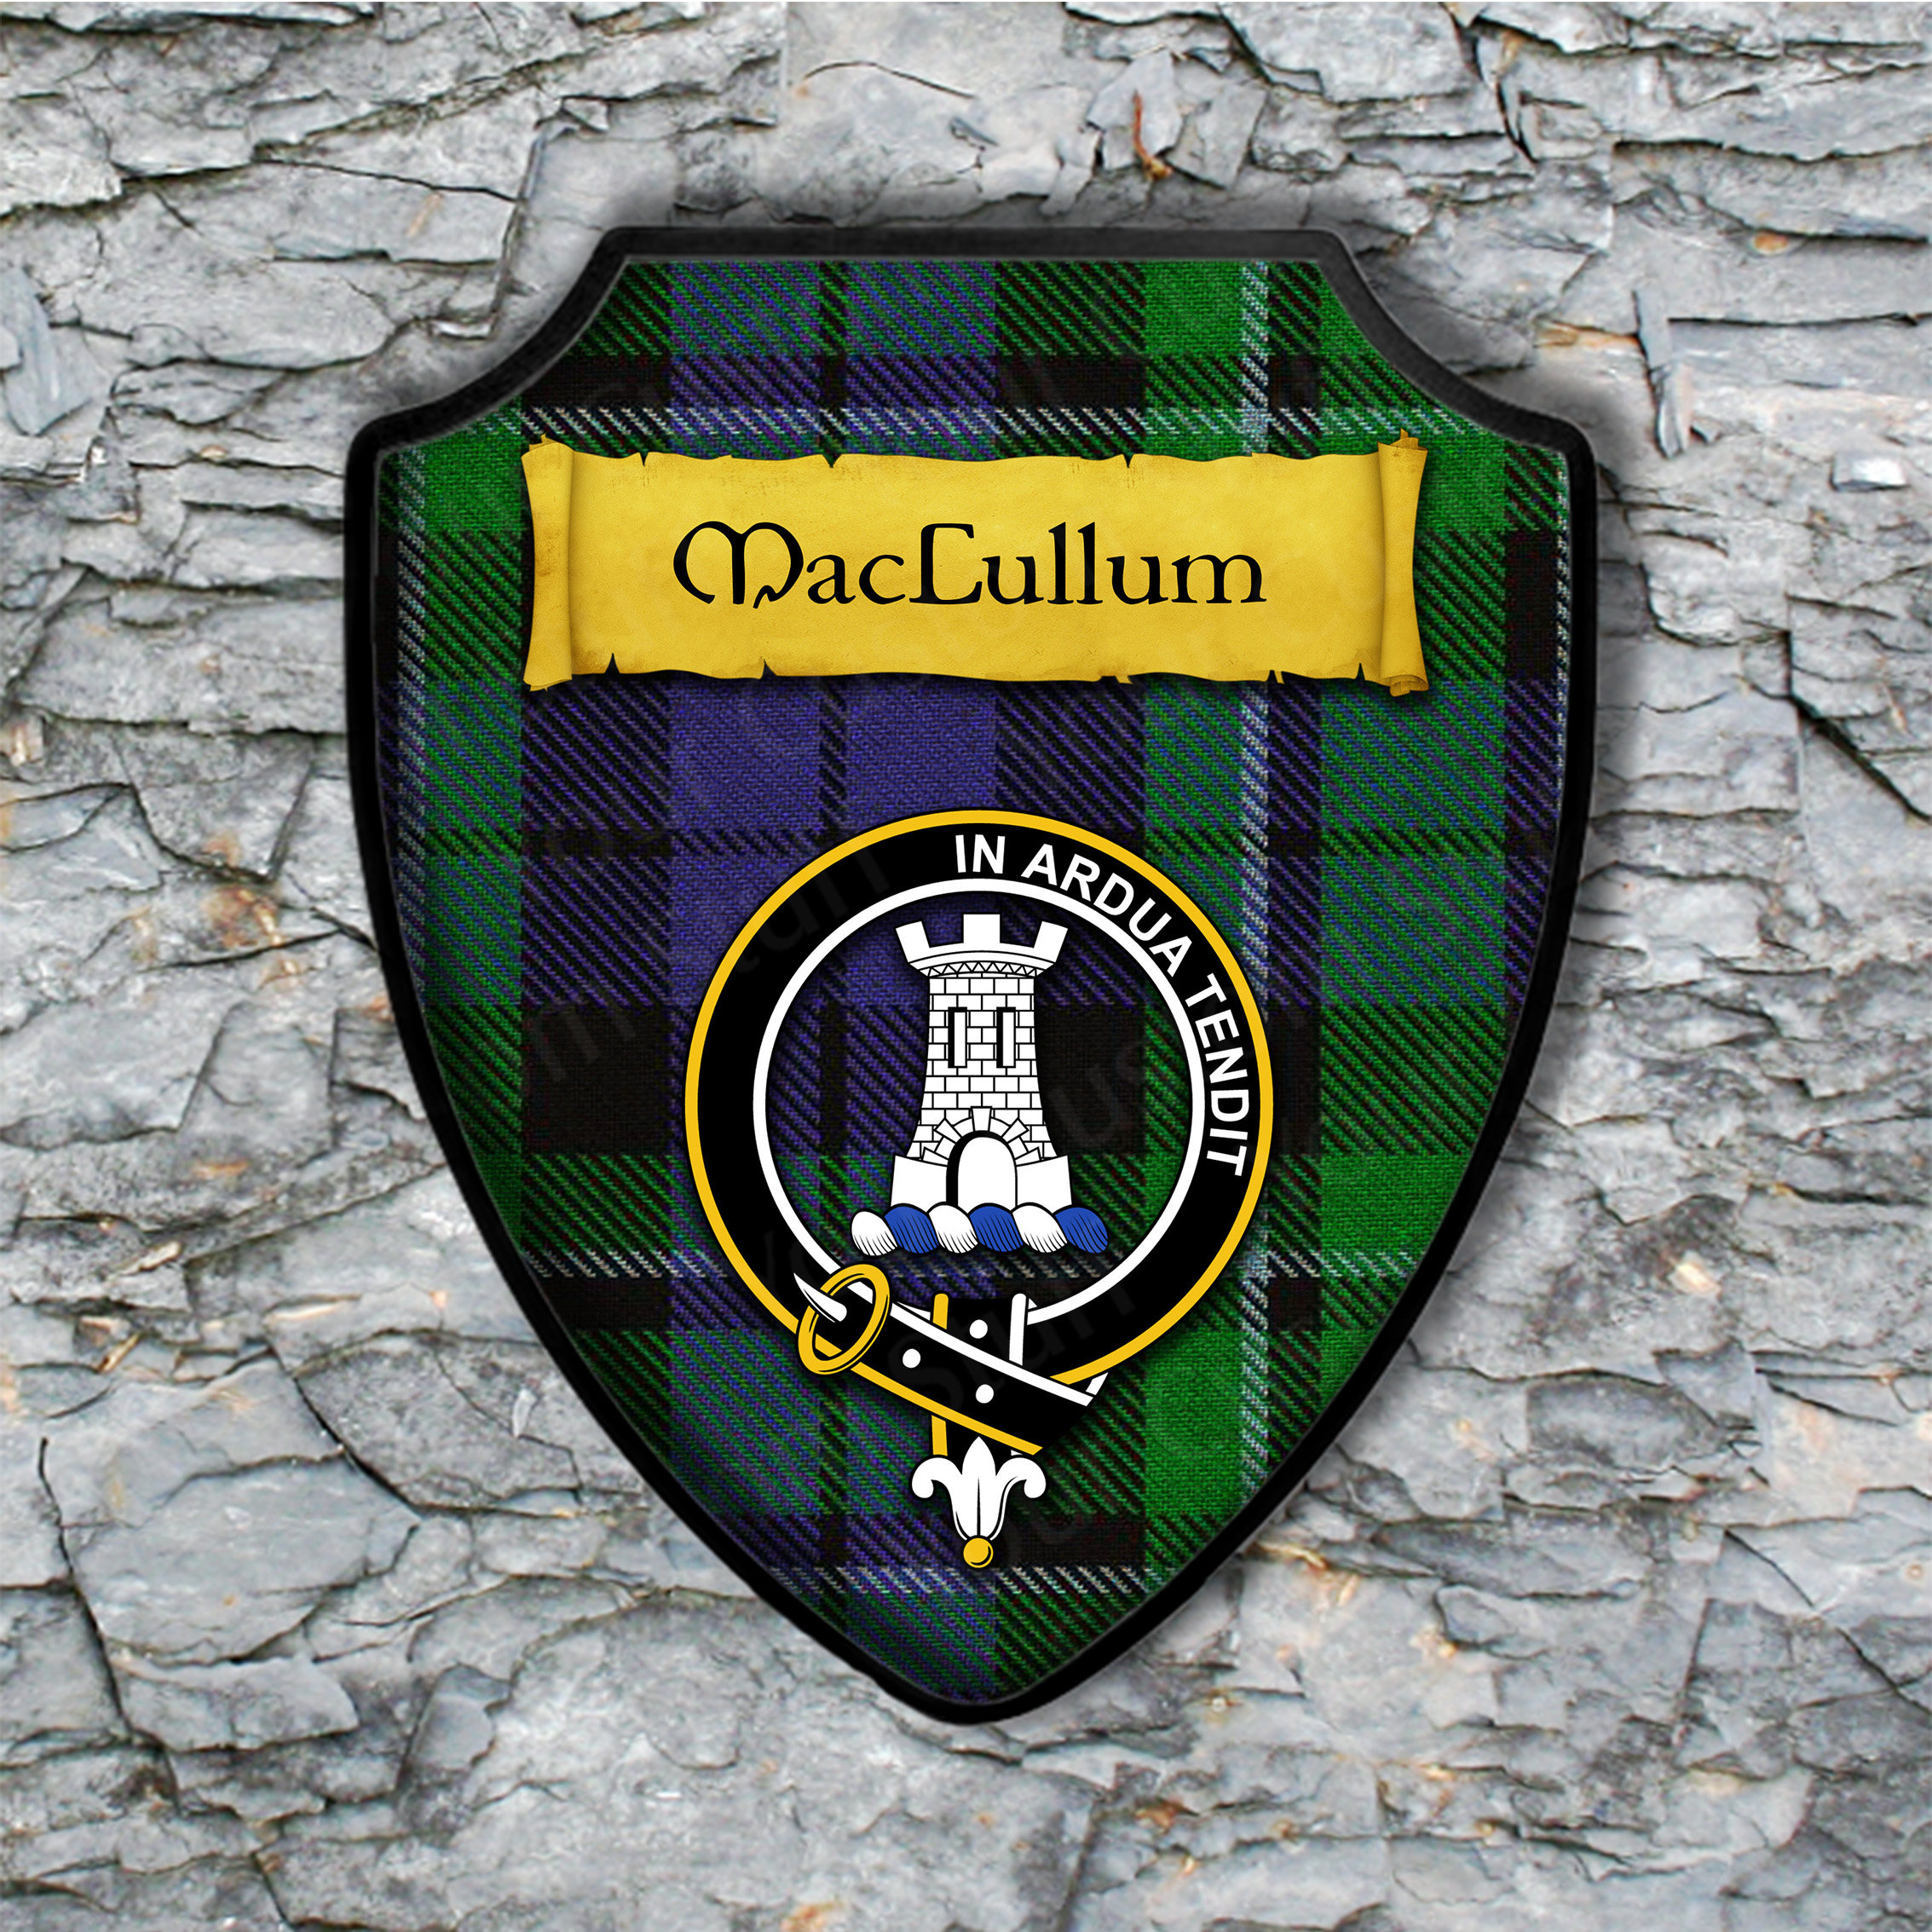 MacCullum Shield Plaque with Scottish Clan Coat of Arms Badge on Clan Plaid Tartan Background Wall Art